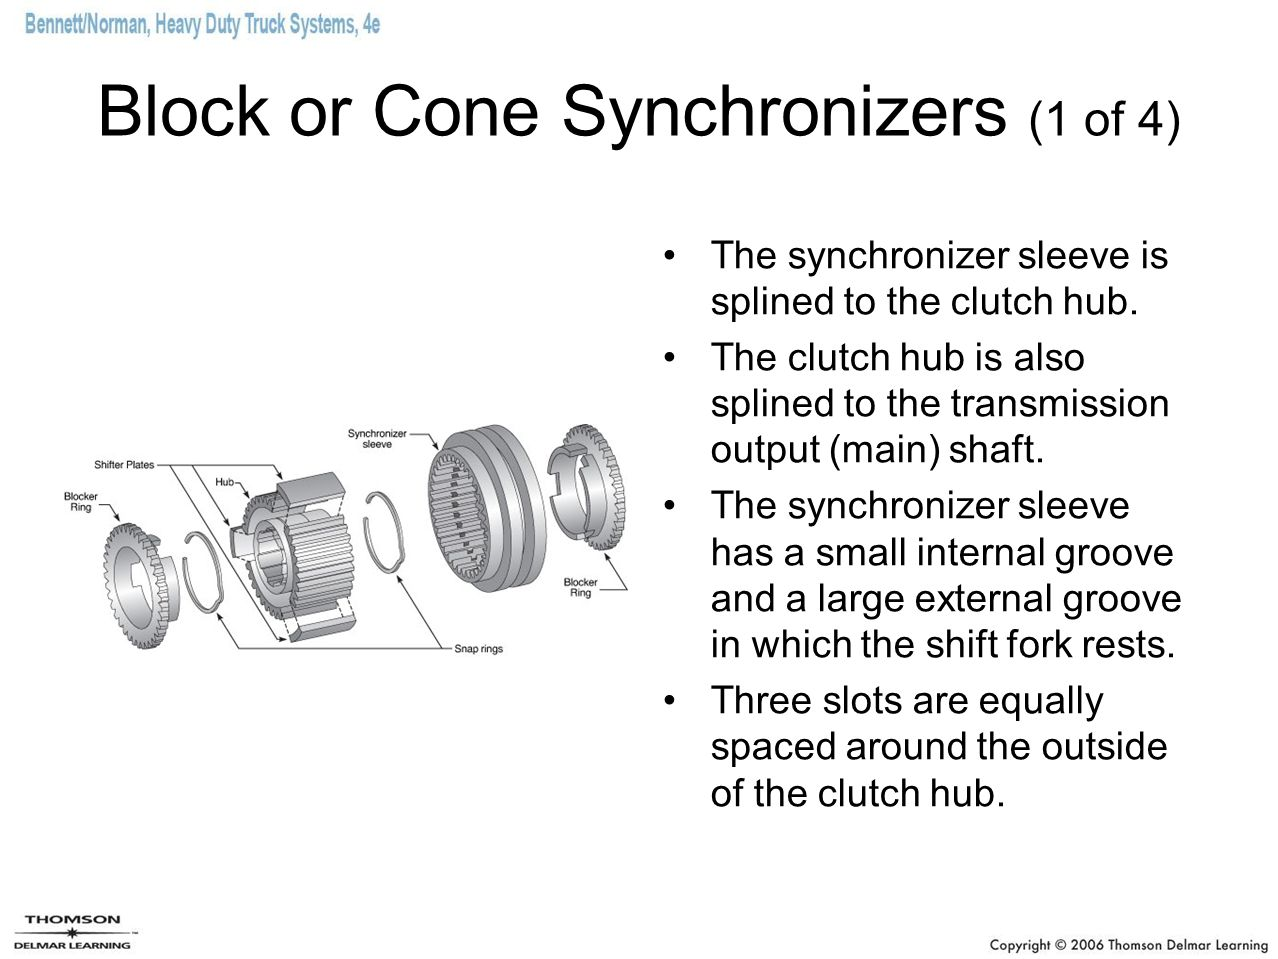 Block or Cone Synchronizers (1 of 4) The synchronizer sleeve is splined to the clutch hub. The clutch hub is also splined to the transmission output (